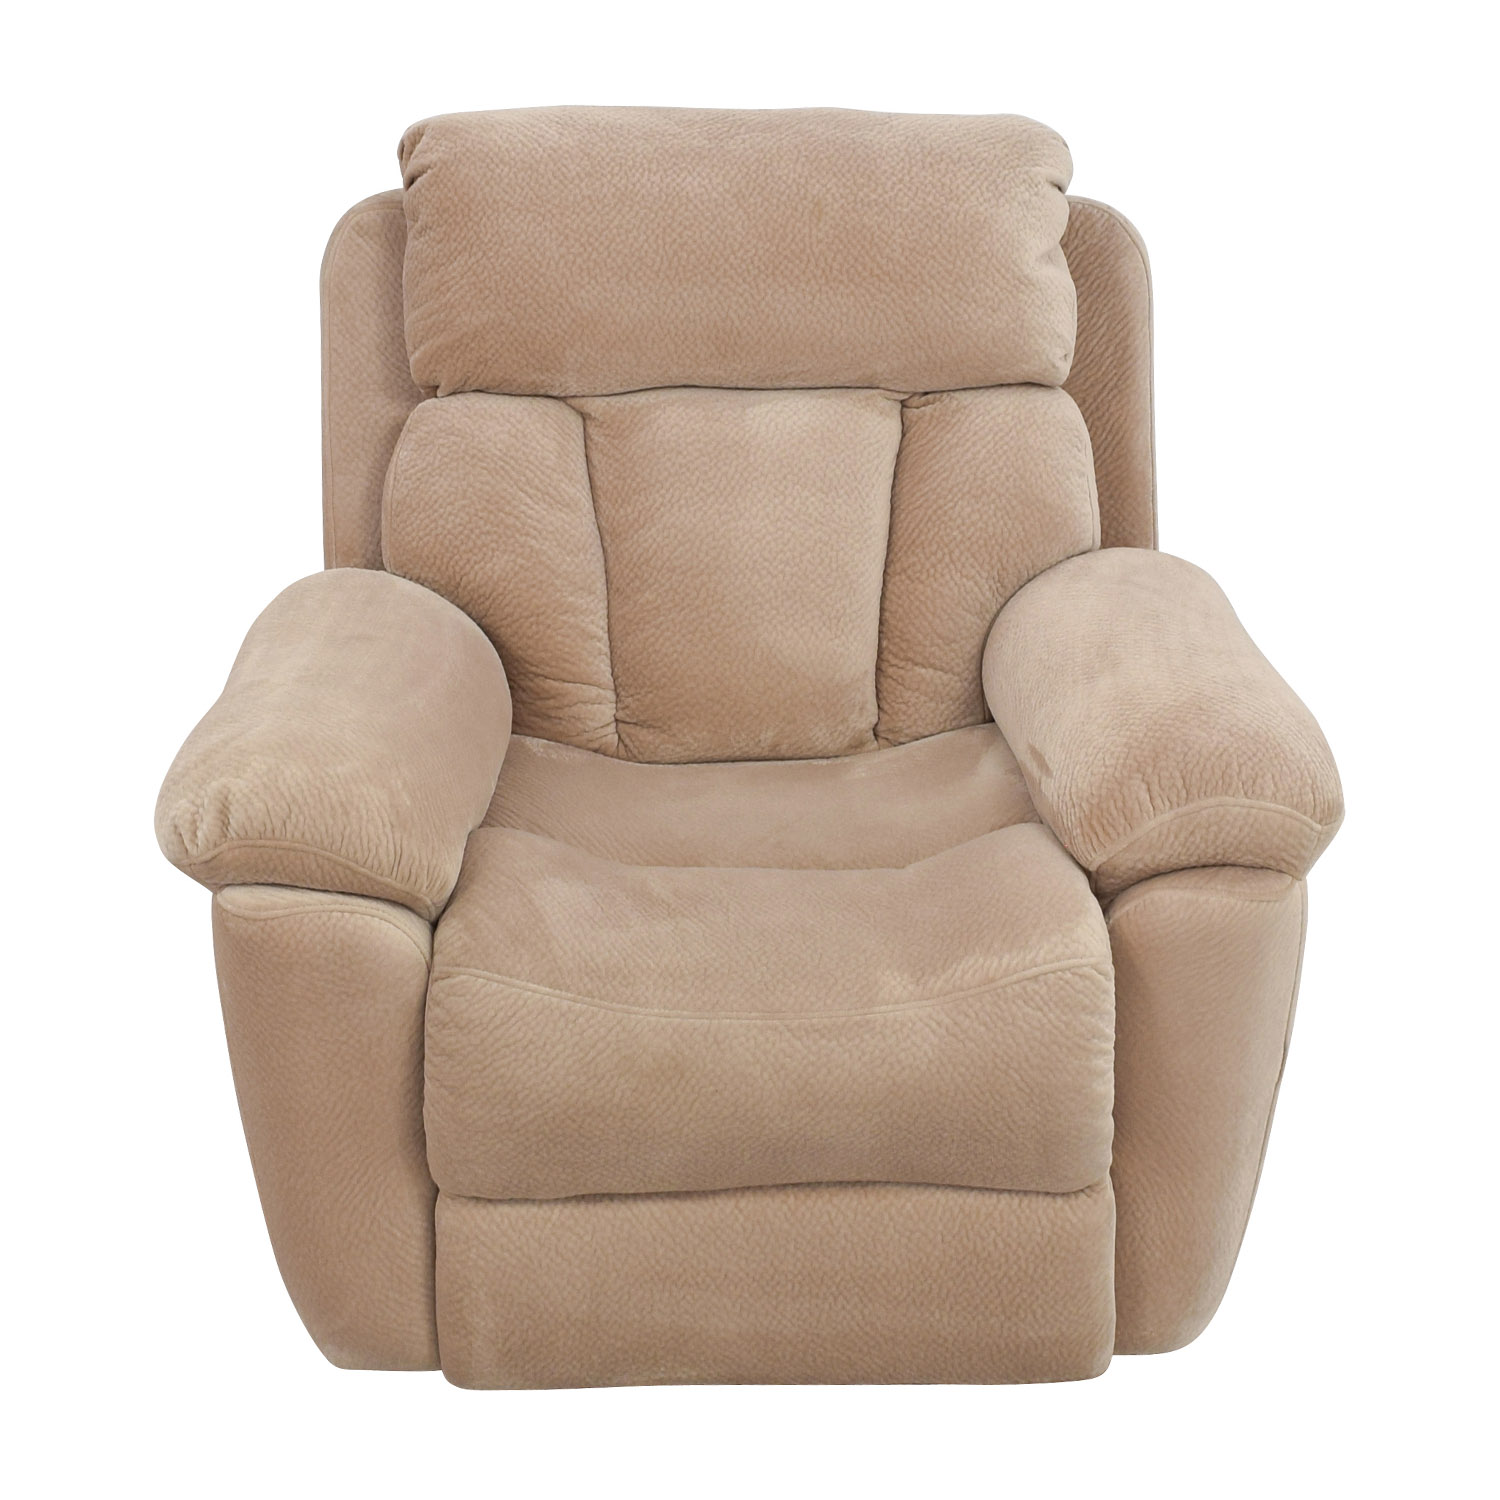 Jennifer Furniture Beige Microfiber Recliner Chair